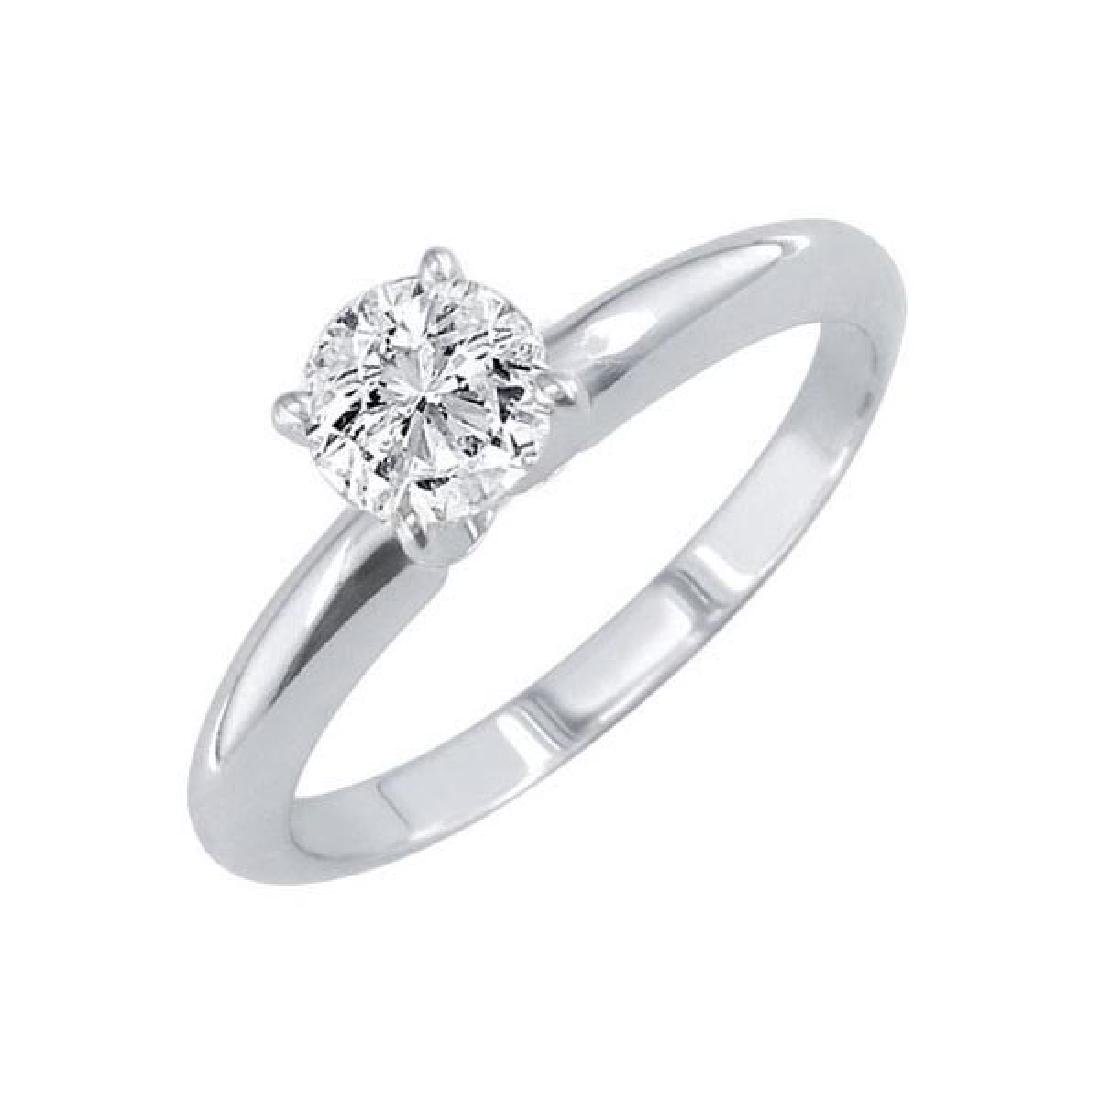 Certified 0.59 CTW Round Diamond Solitaire 14k Ring D/S